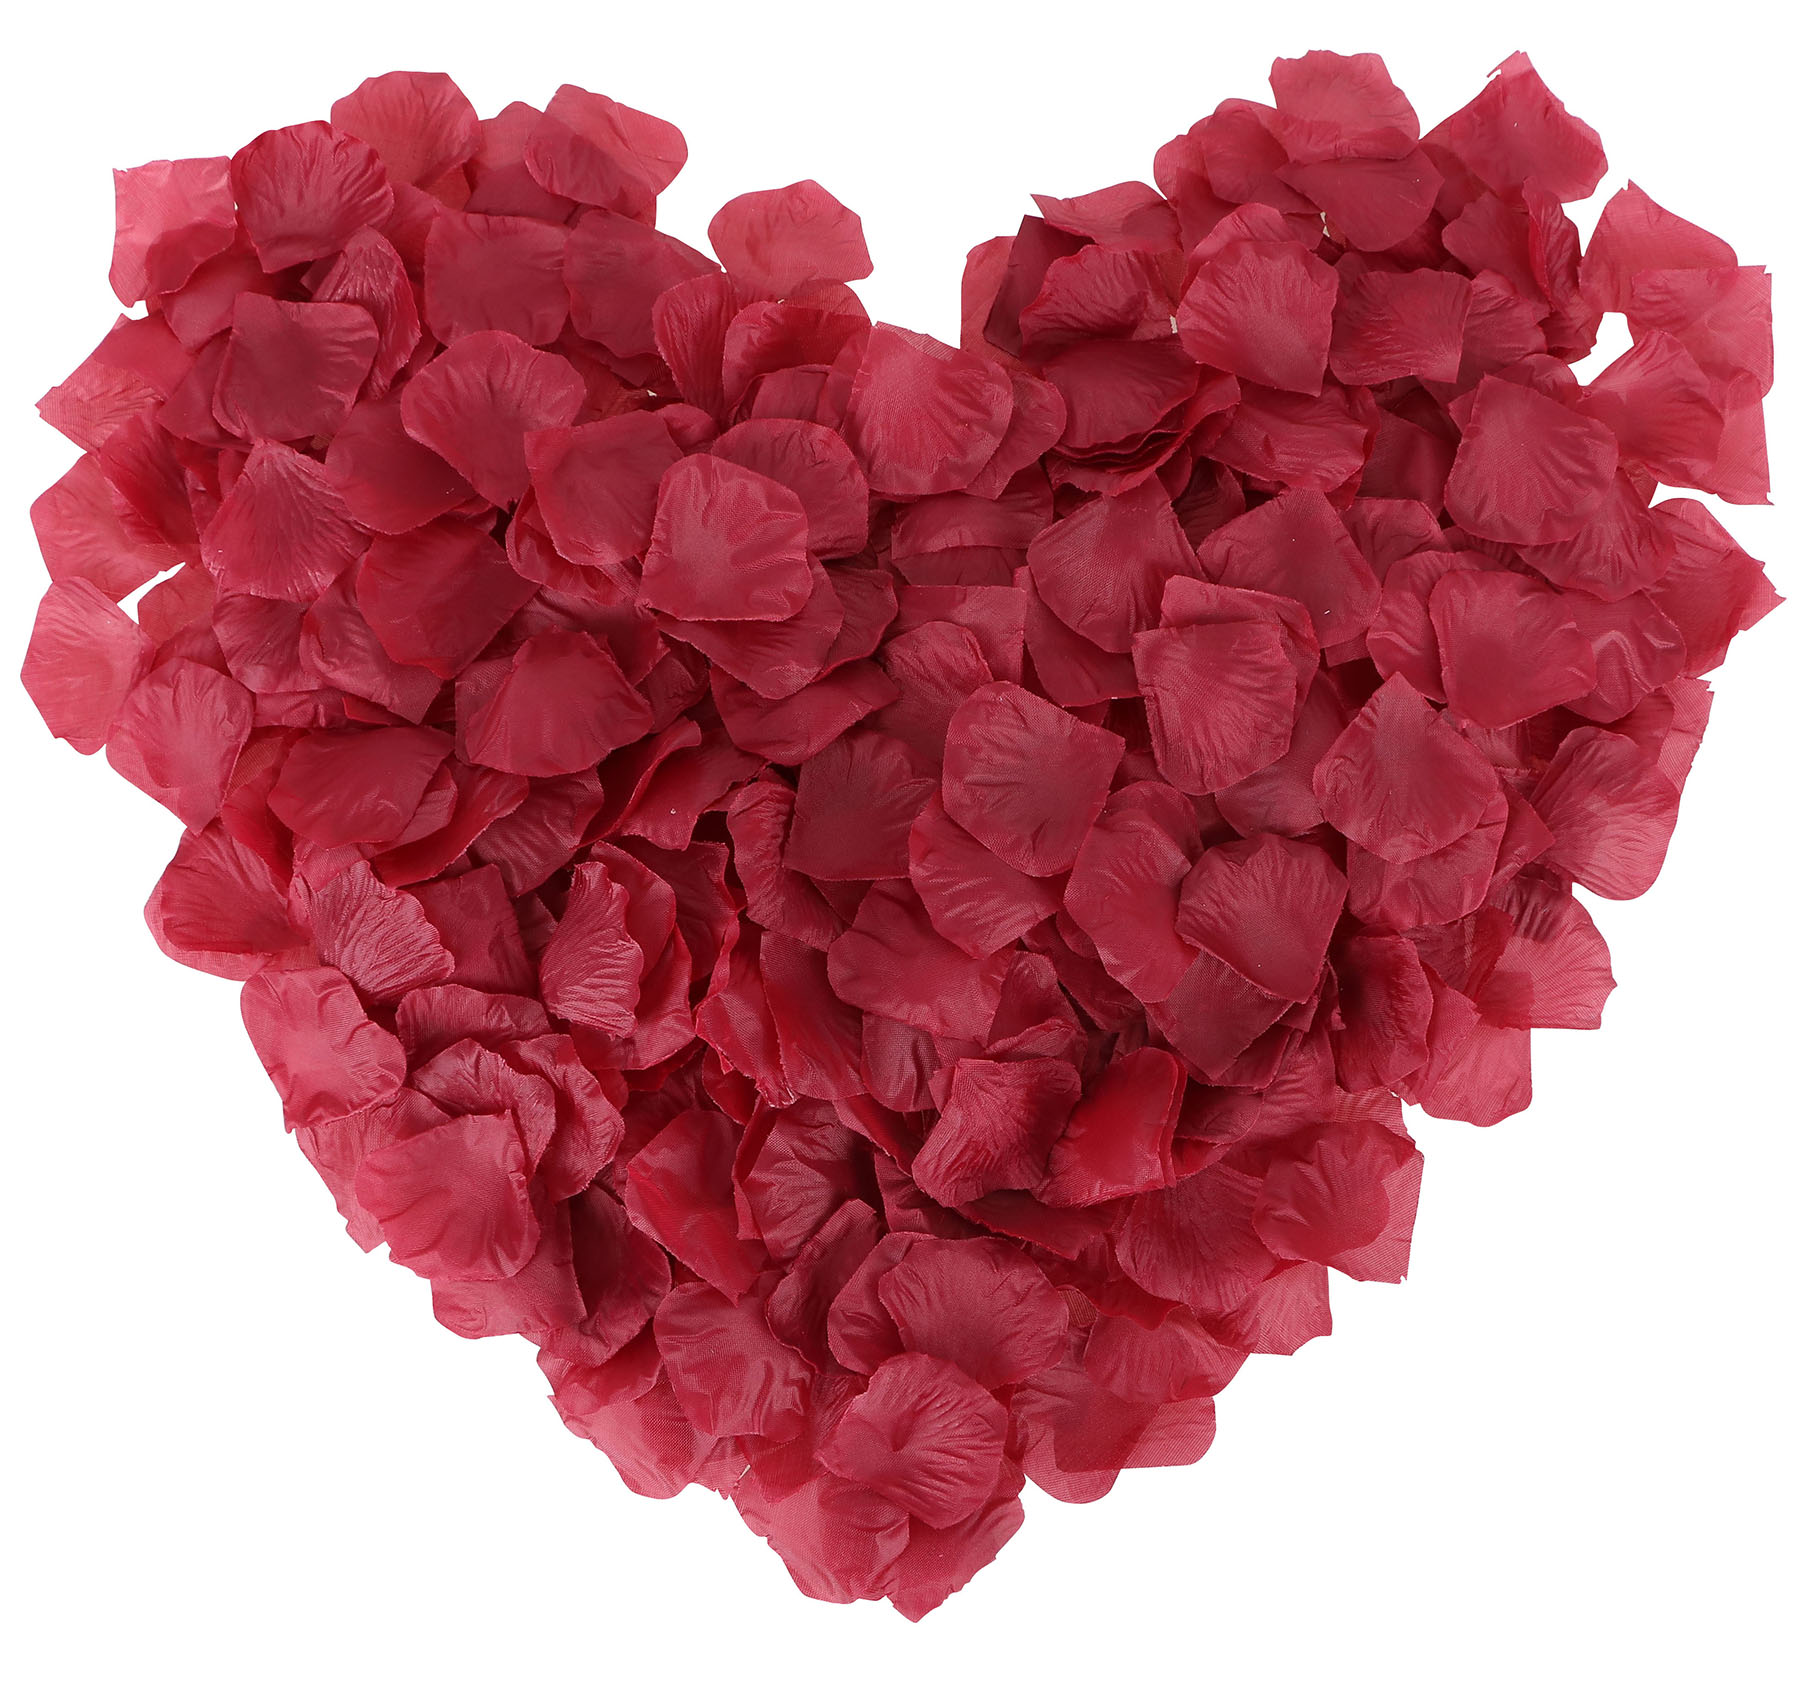 Pack of 1000 Pcs Artificial Flower Petals for Wedding Decoration, Dark Burgundy